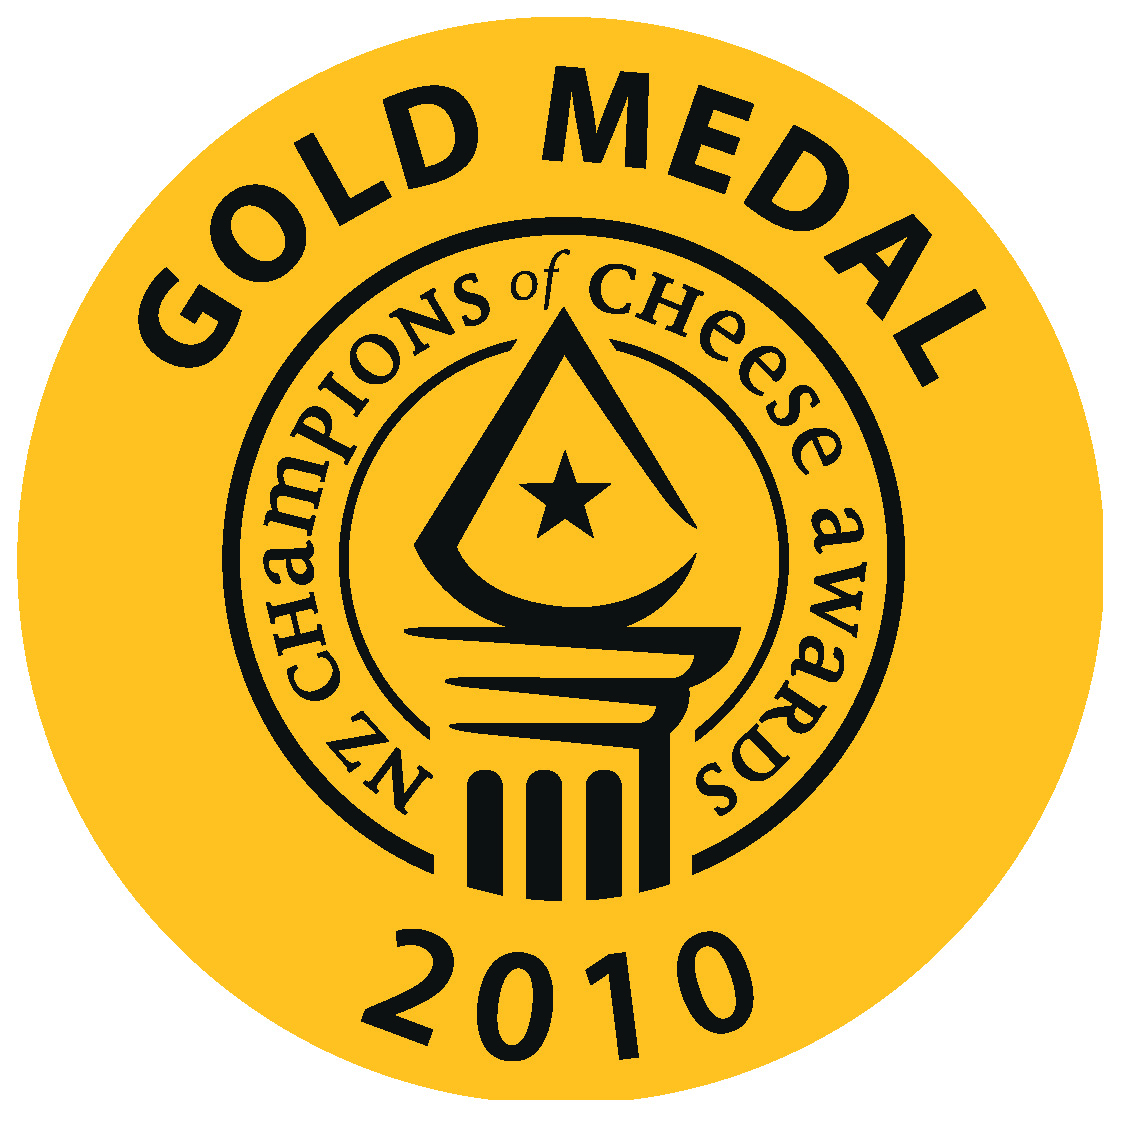 cheese medals hires G10.jpg